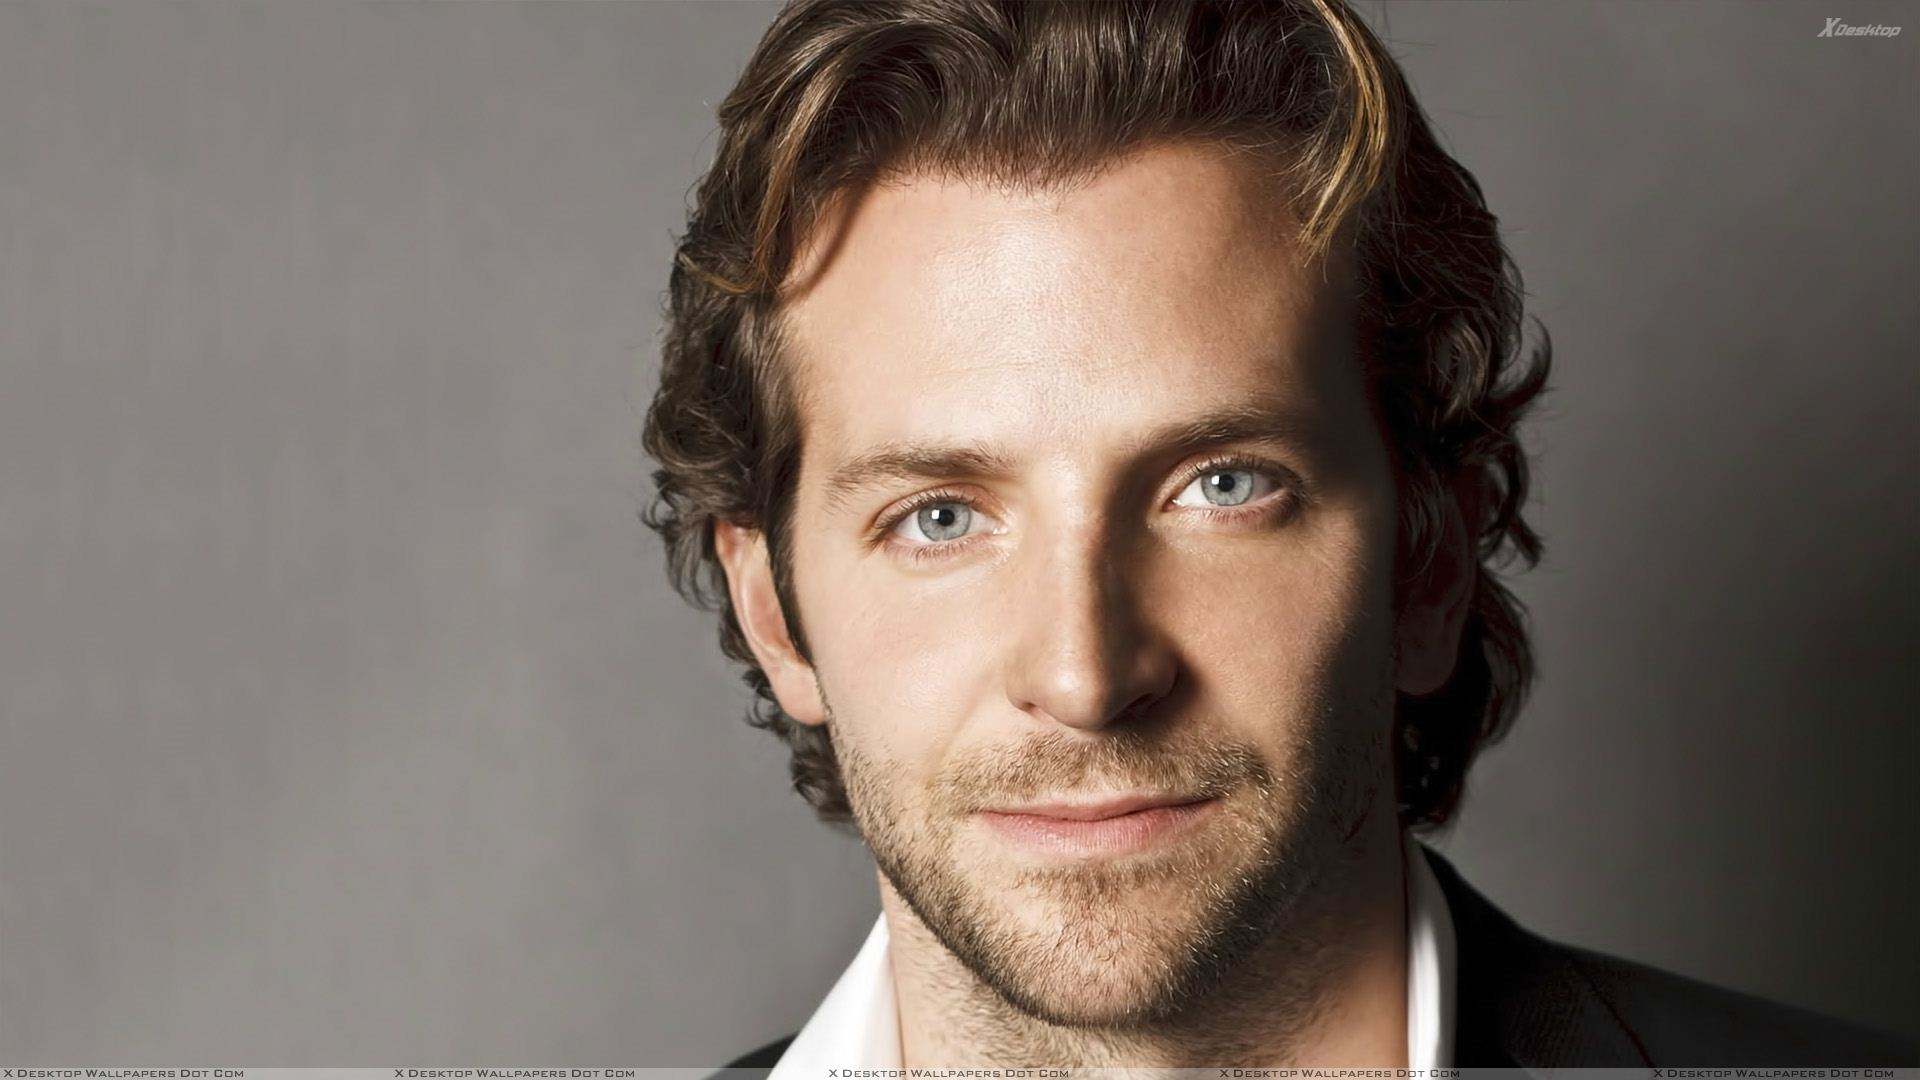 bradley cooper wallpapers photos images in hd